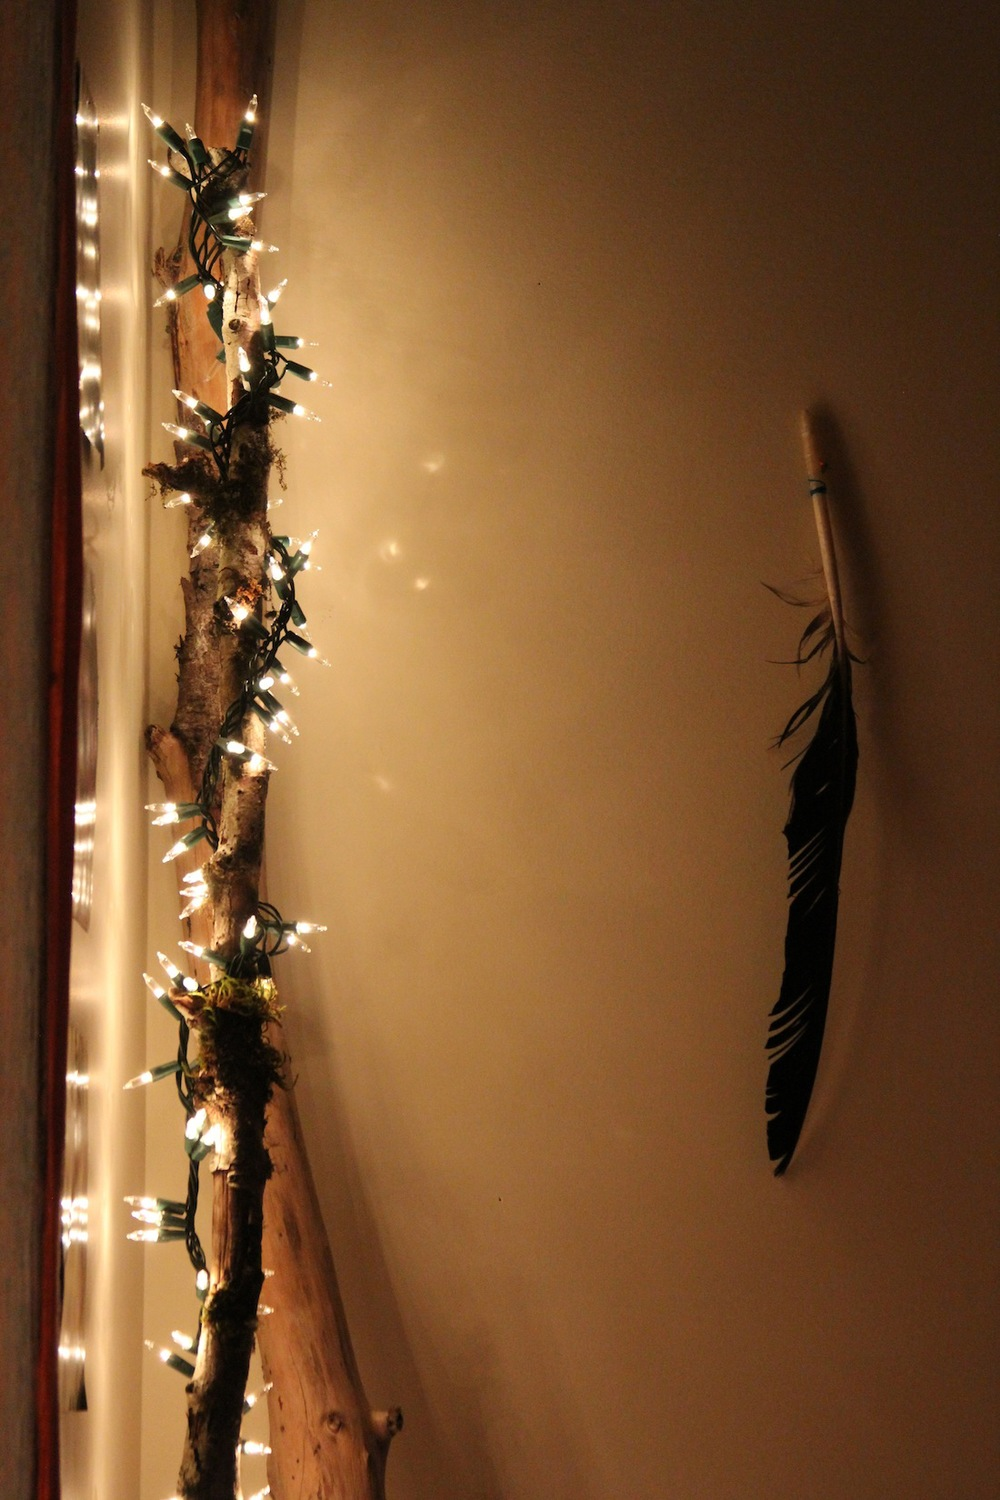 An eagle feather hangs beside a DIY lamp - twinkling lights wrapped around a long piece of wood!